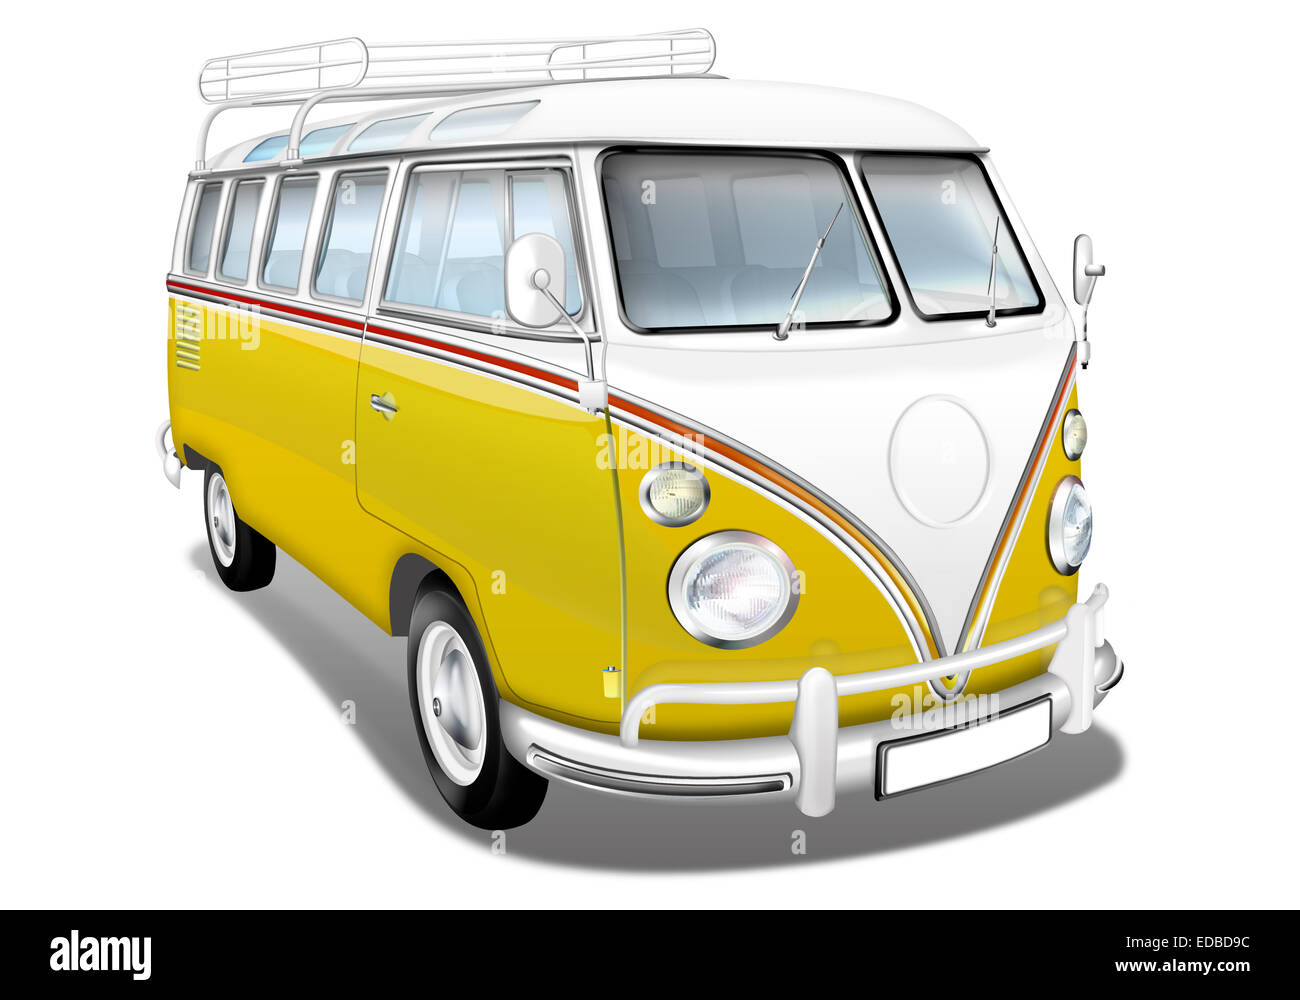 vw bus vw bus t1 german vintage car as a camper yellow and white stock photo royalty free. Black Bedroom Furniture Sets. Home Design Ideas